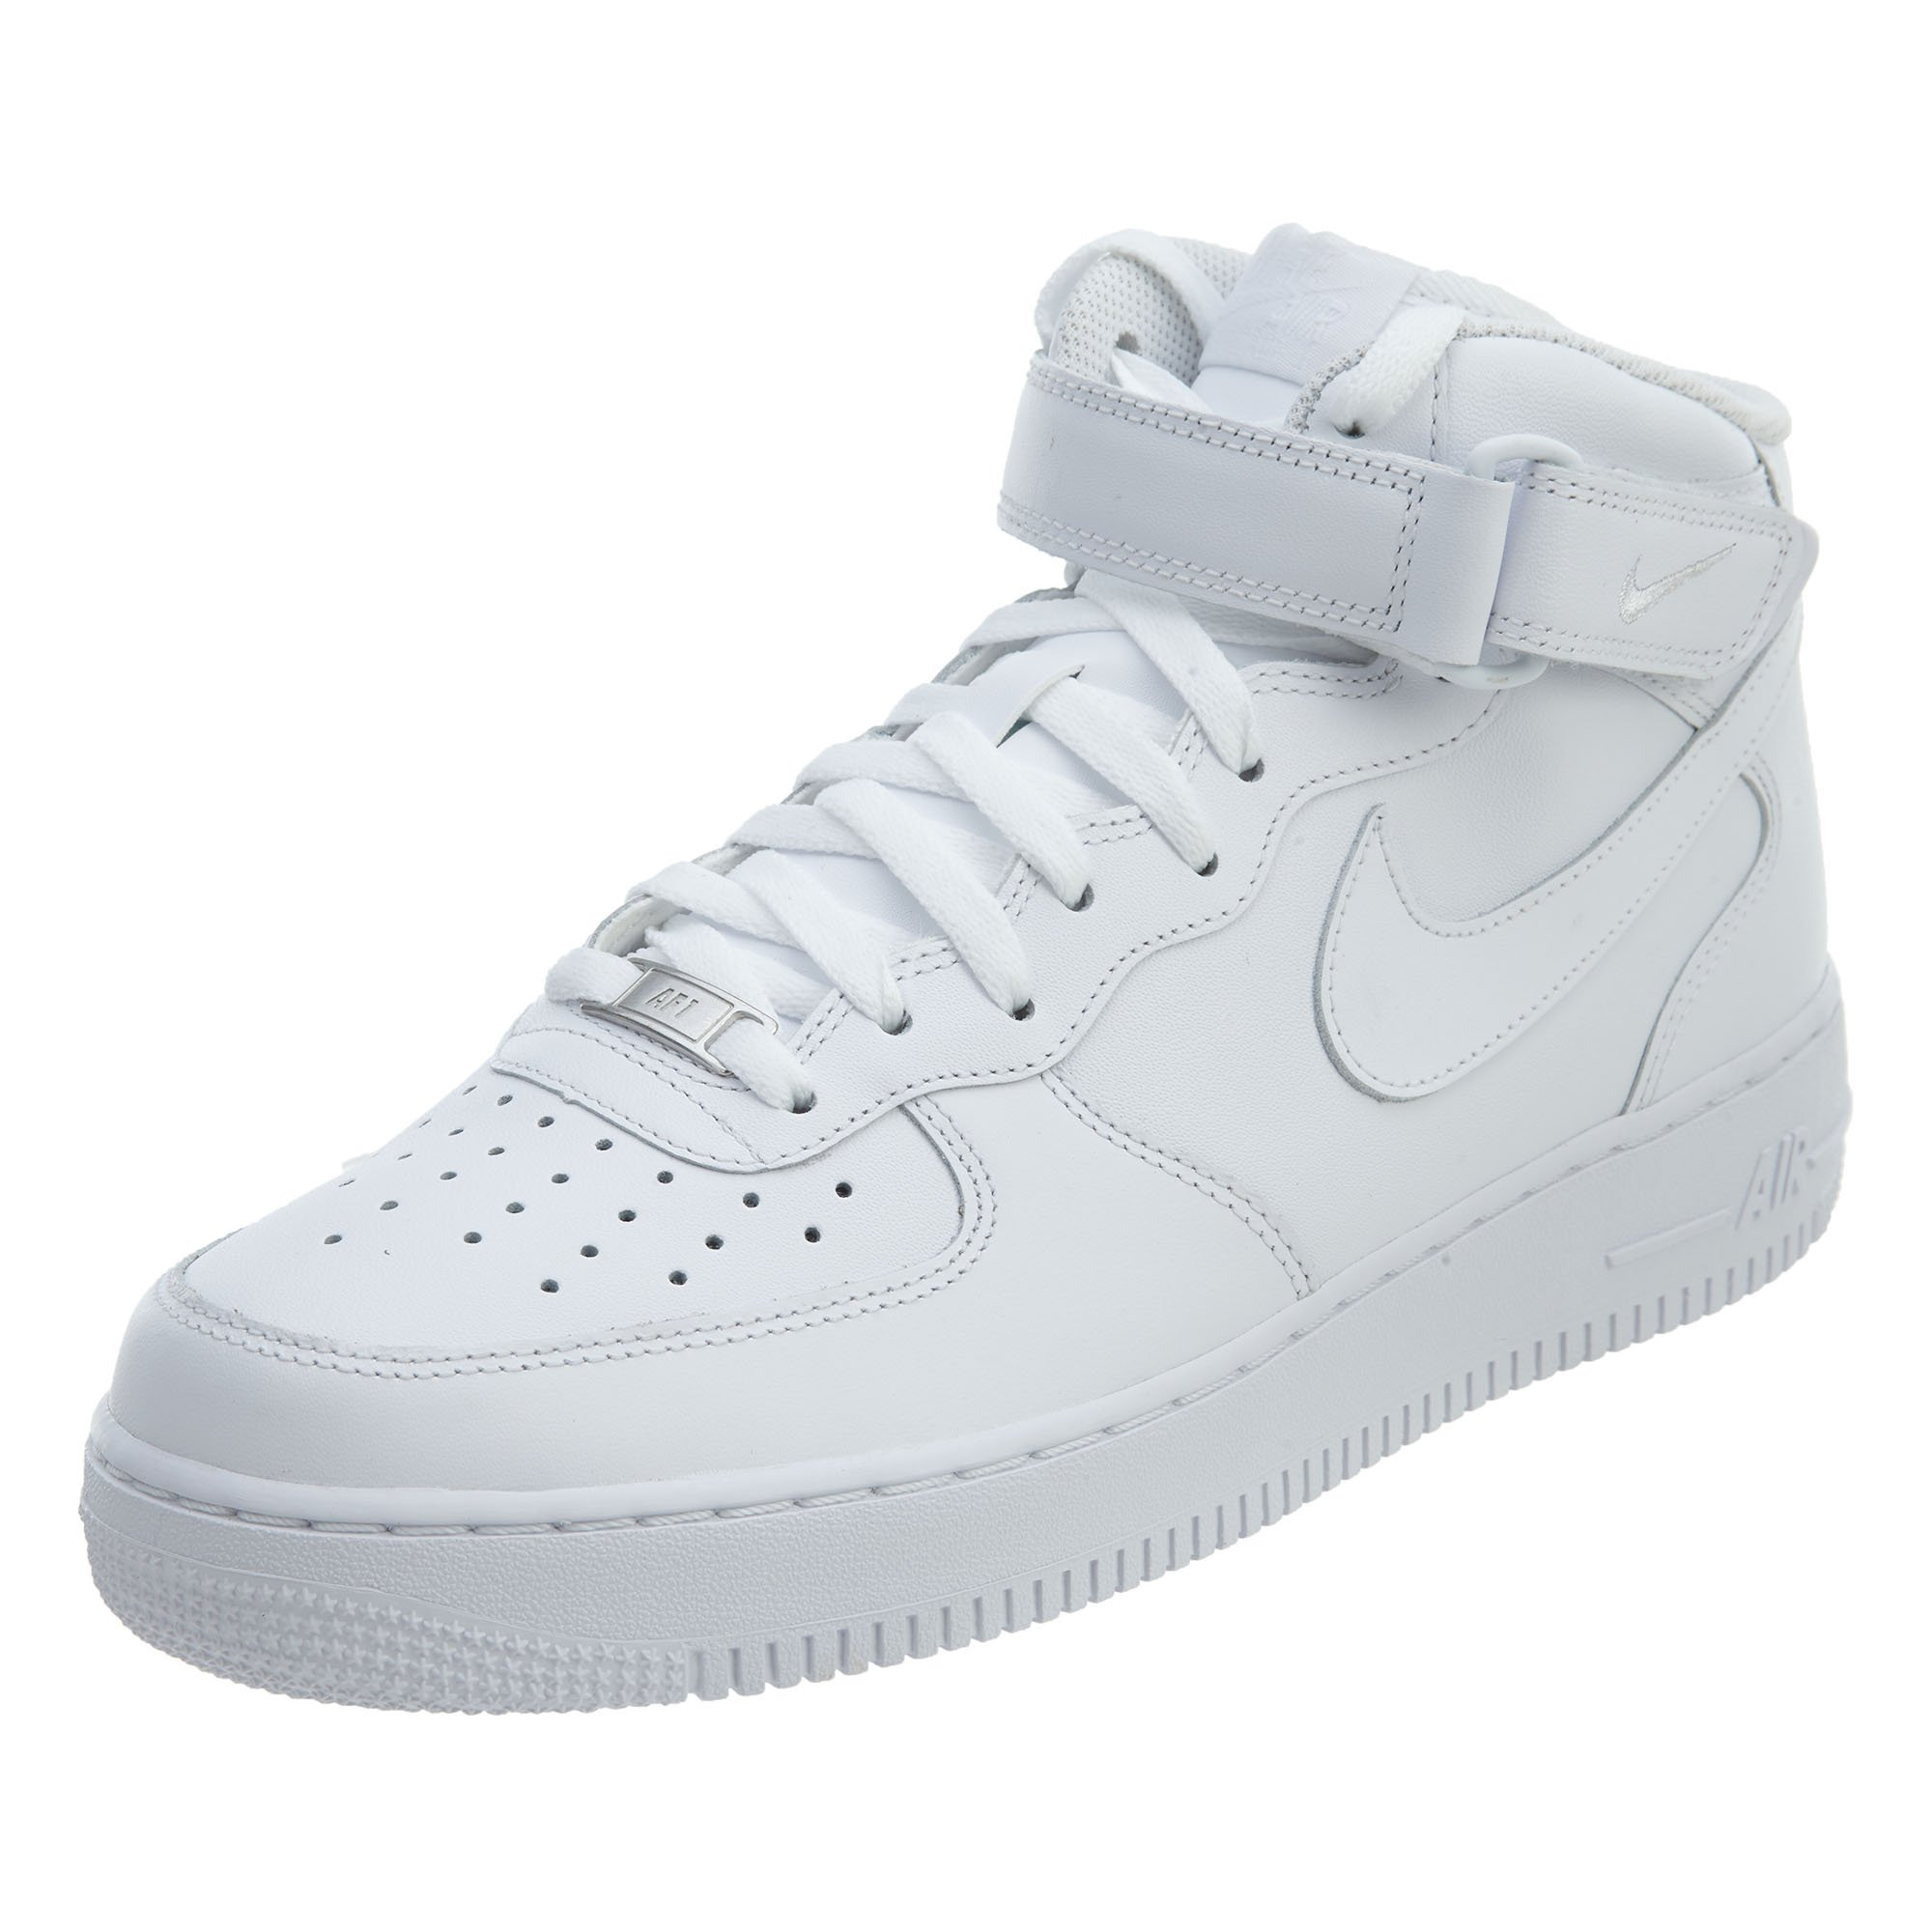 low priced e9a1f 1cc1d Galleon - Nike Men s Air Force 1 Mid 07 Basketball Sneakers White Size 13 D  (US)